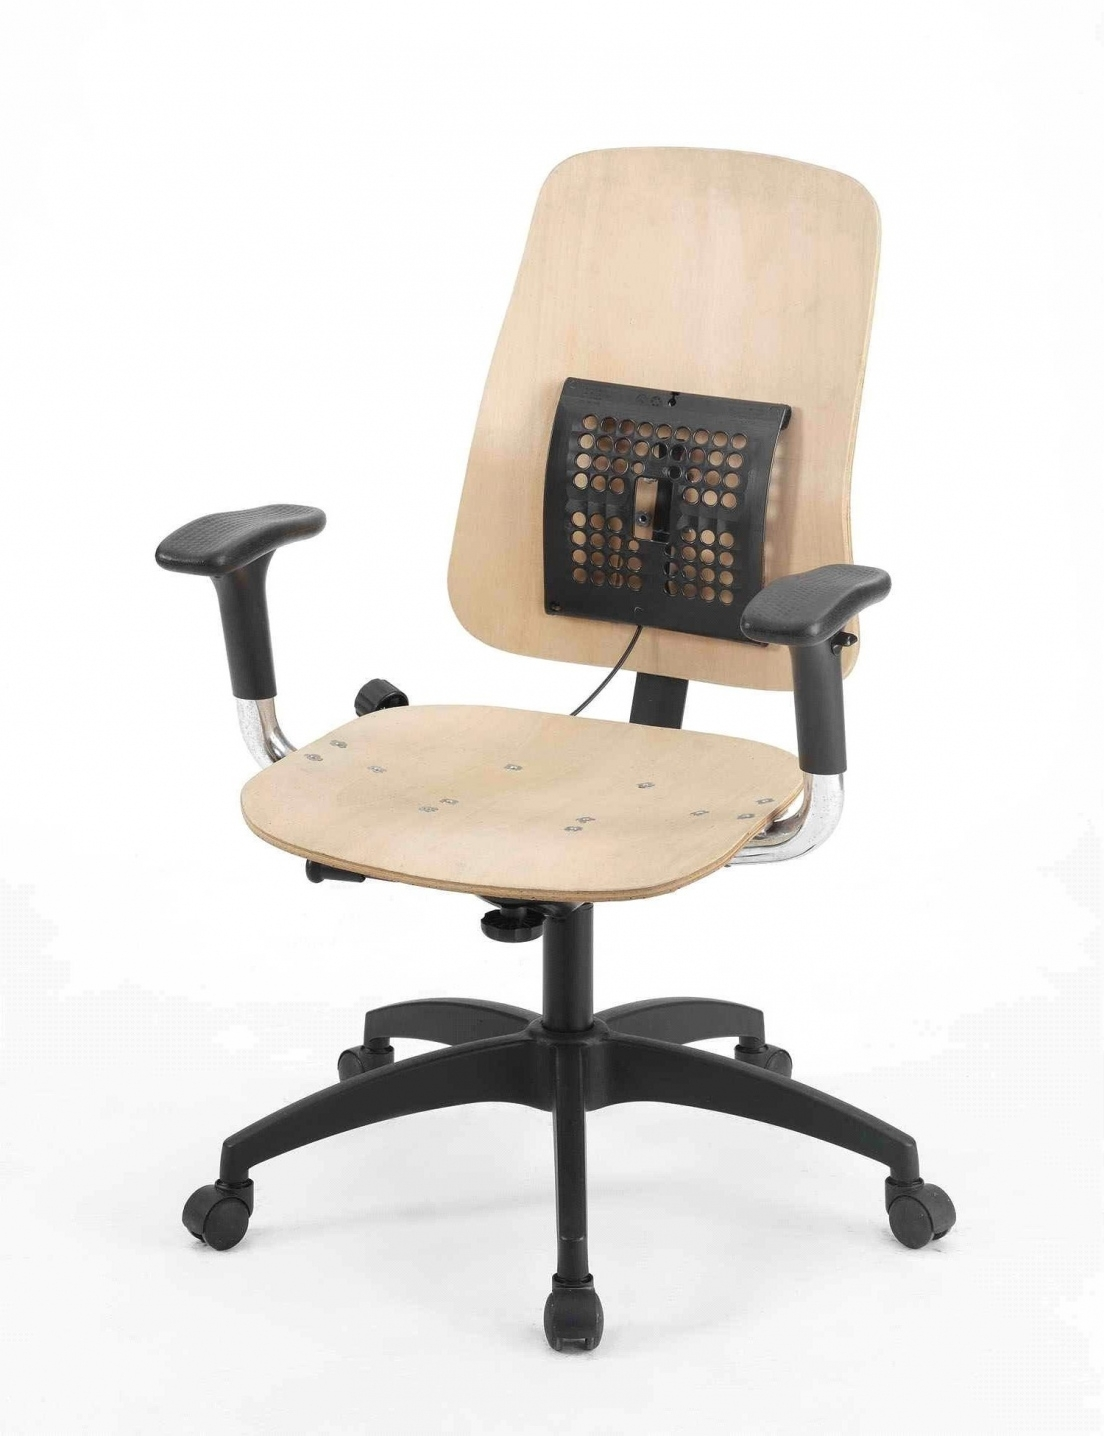 Executive Office Chairs With Adjustable Lumbar Support Within Current Office Chair With Adjustable Lumbar Support – Desk Design Ideas (View 7 of 20)